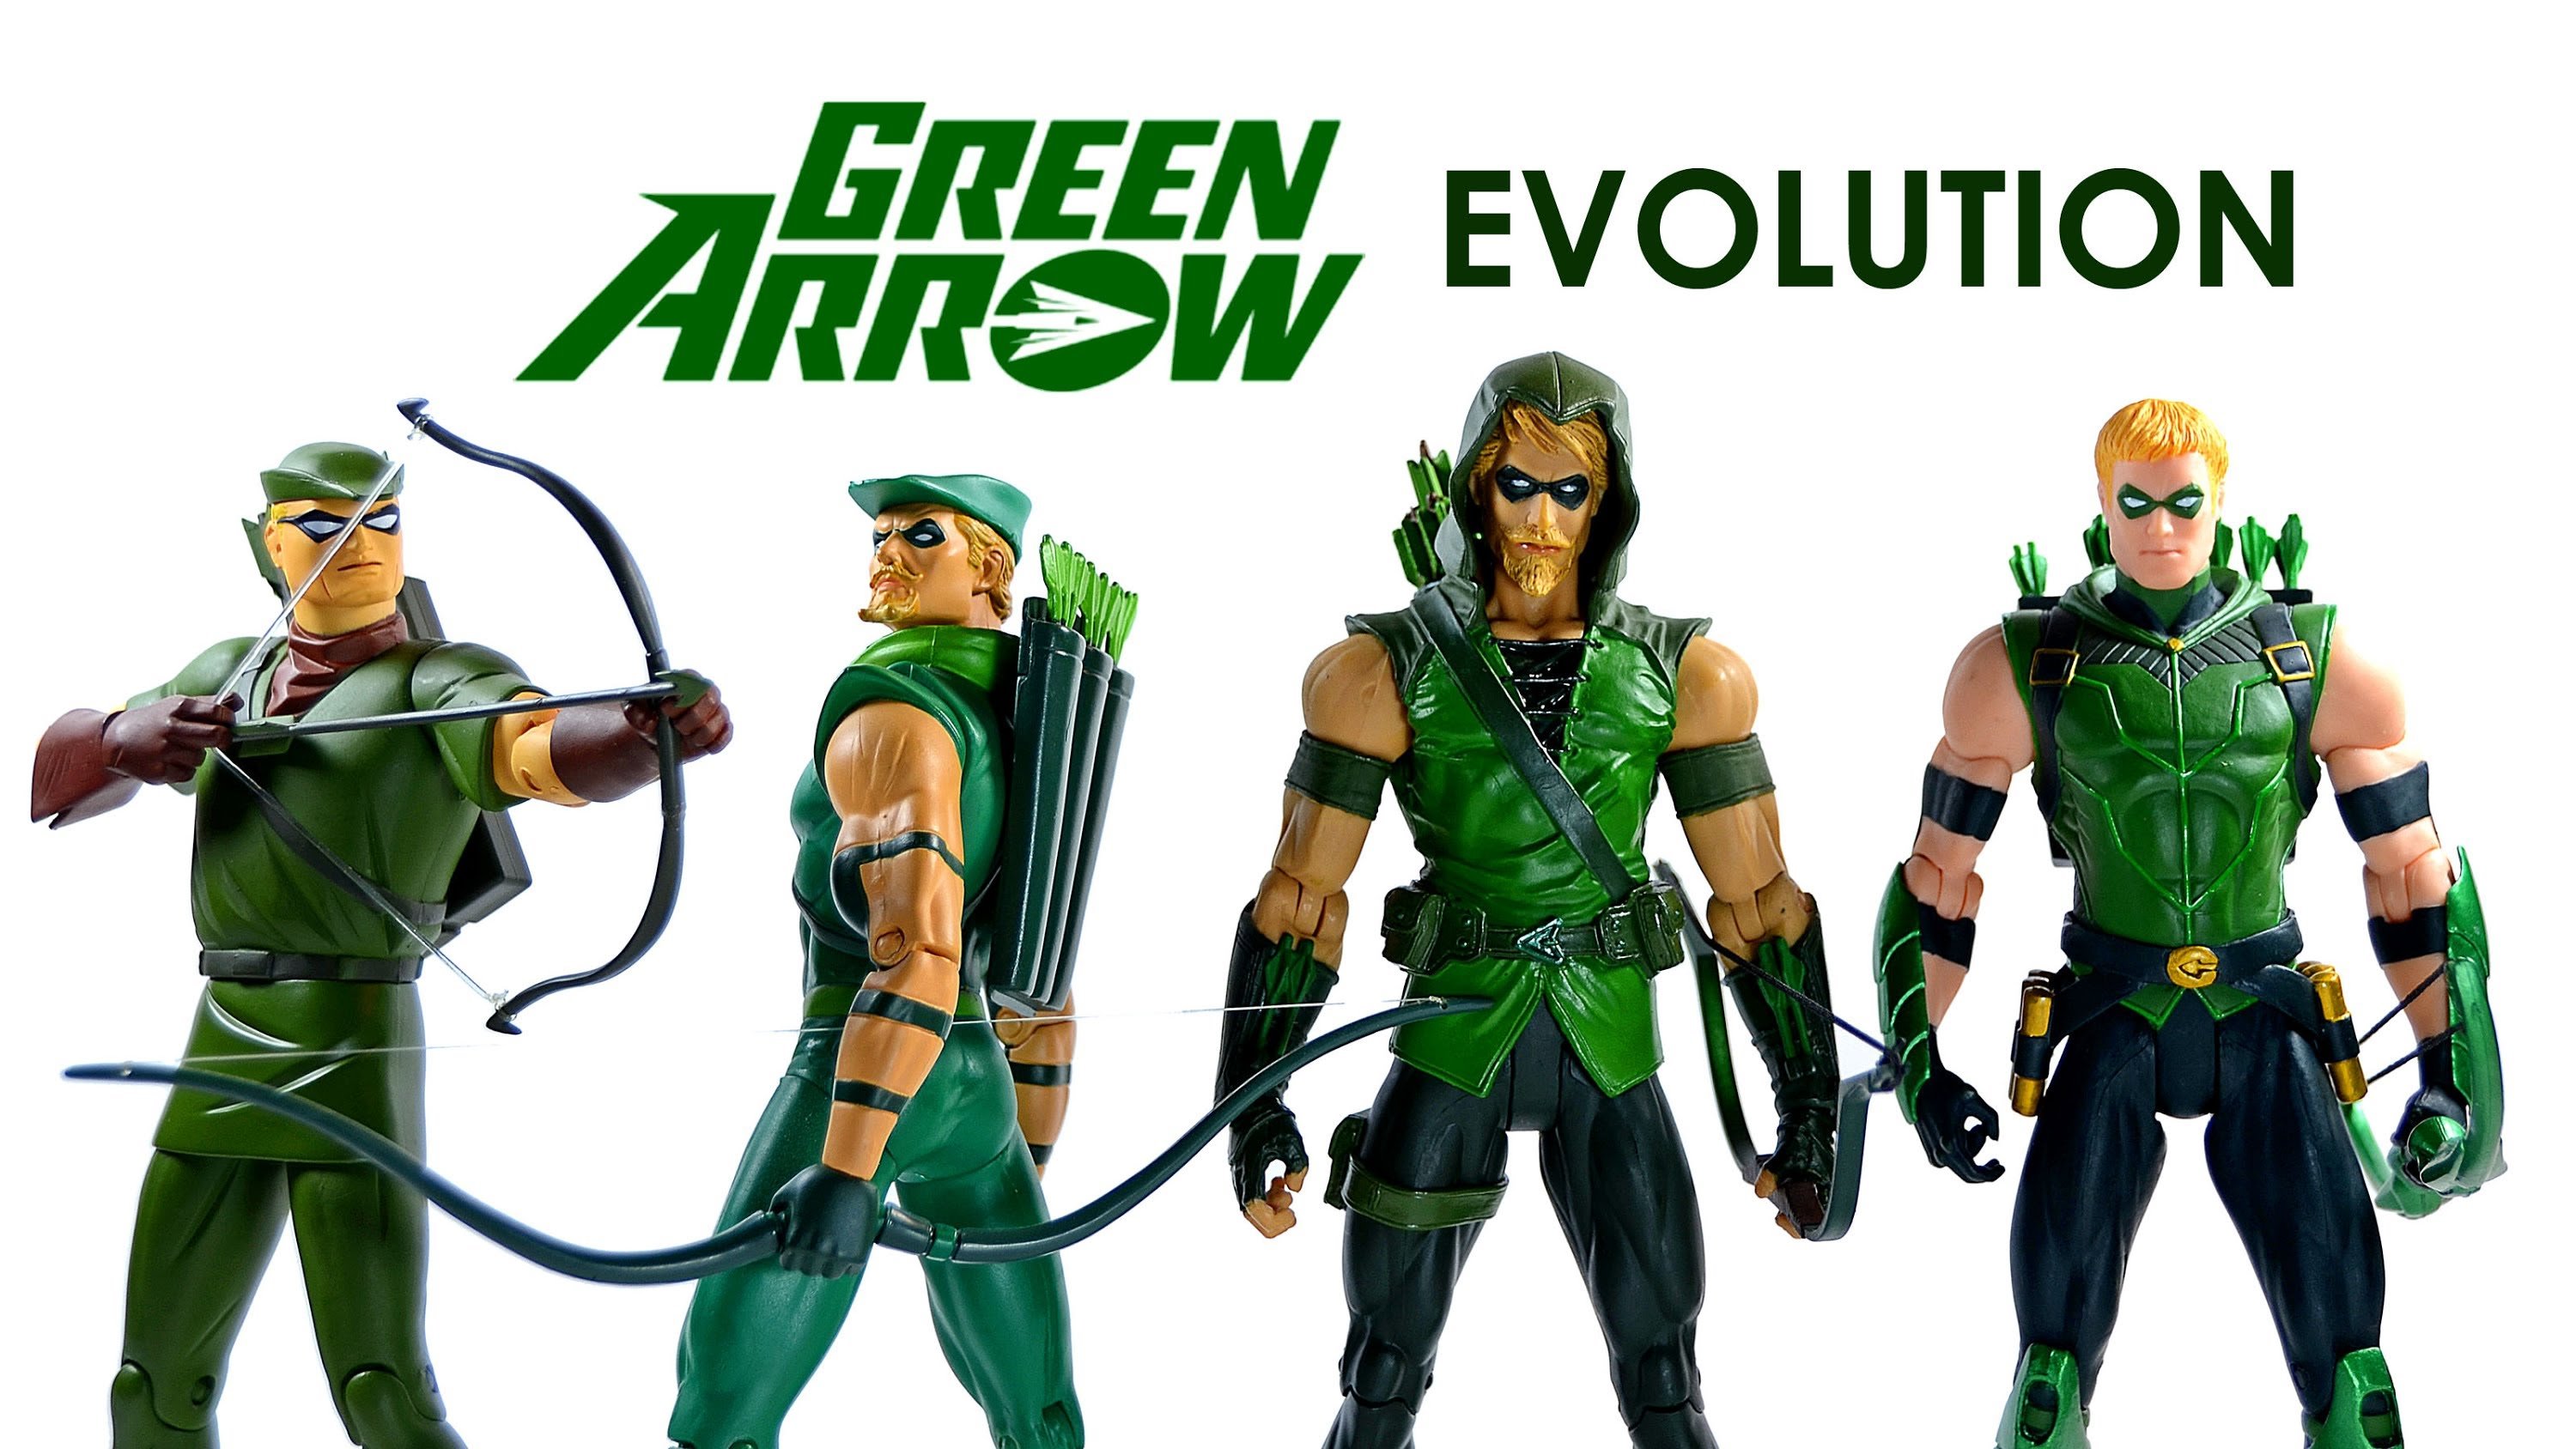 Picture of green arrow graphic transparent Green arrow images - ClipartFest graphic transparent